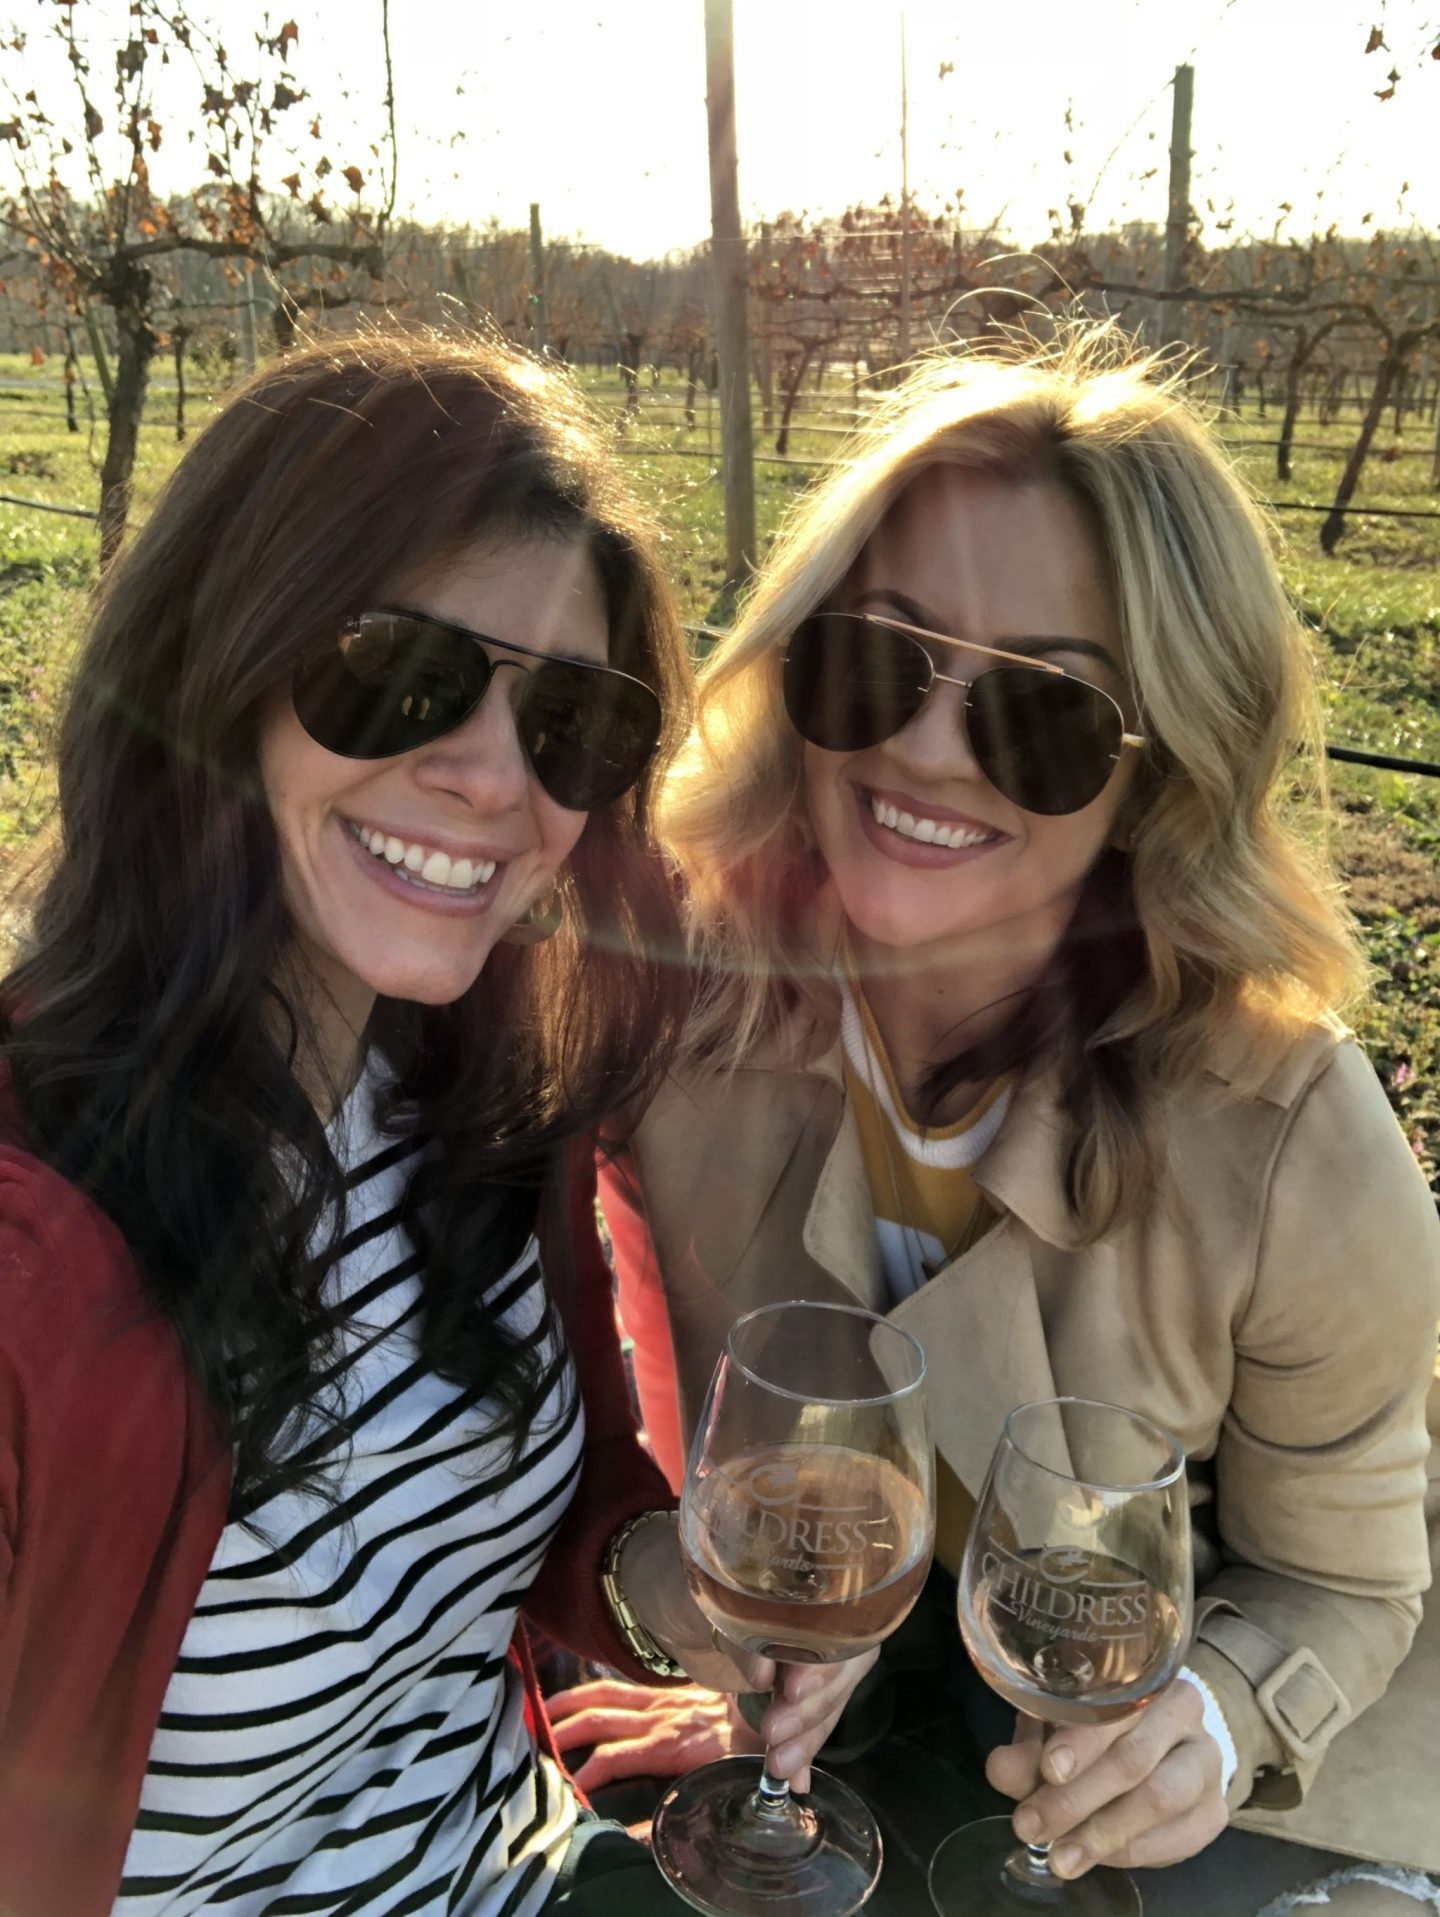 Childress Vineyards - Lauren Schwaiger Travel Blog